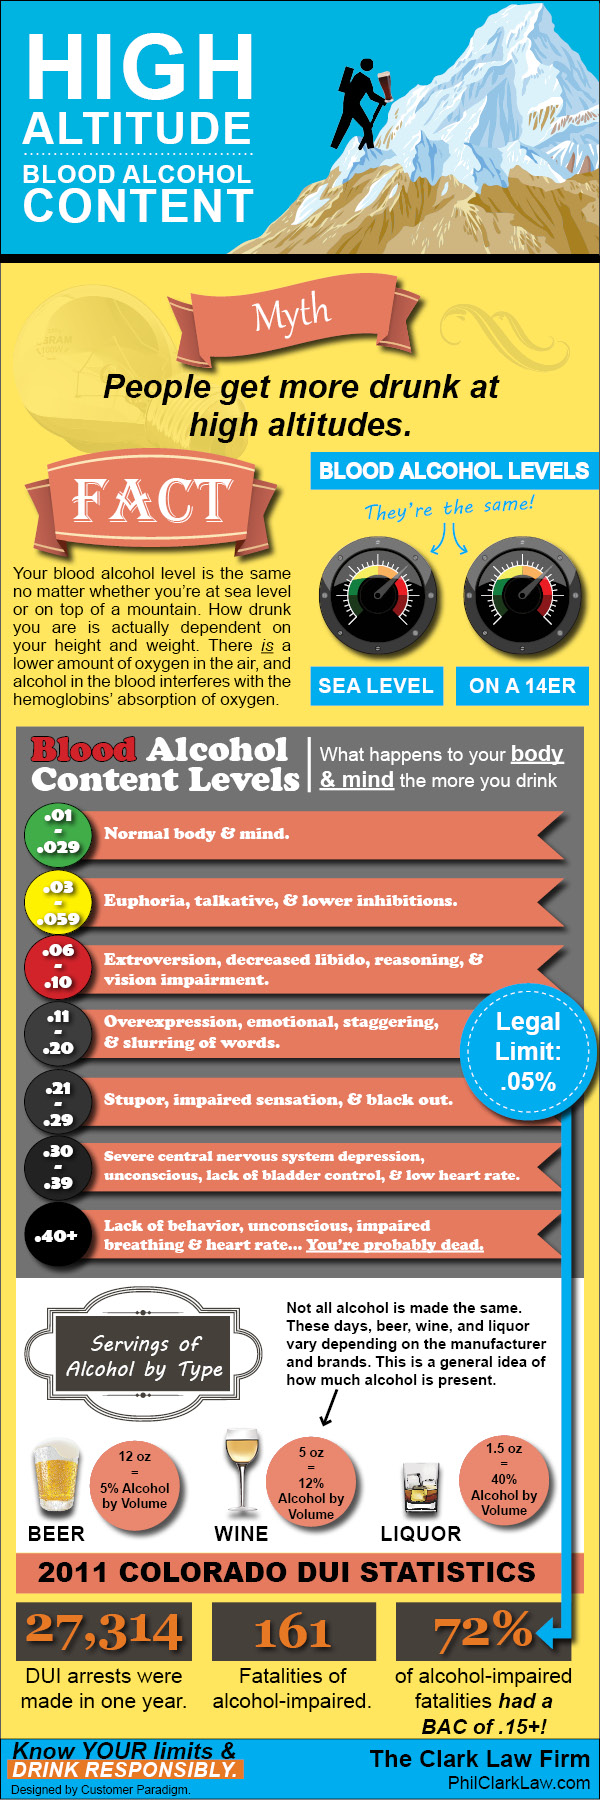 High Altitude Blood Alcohol Content Infographic